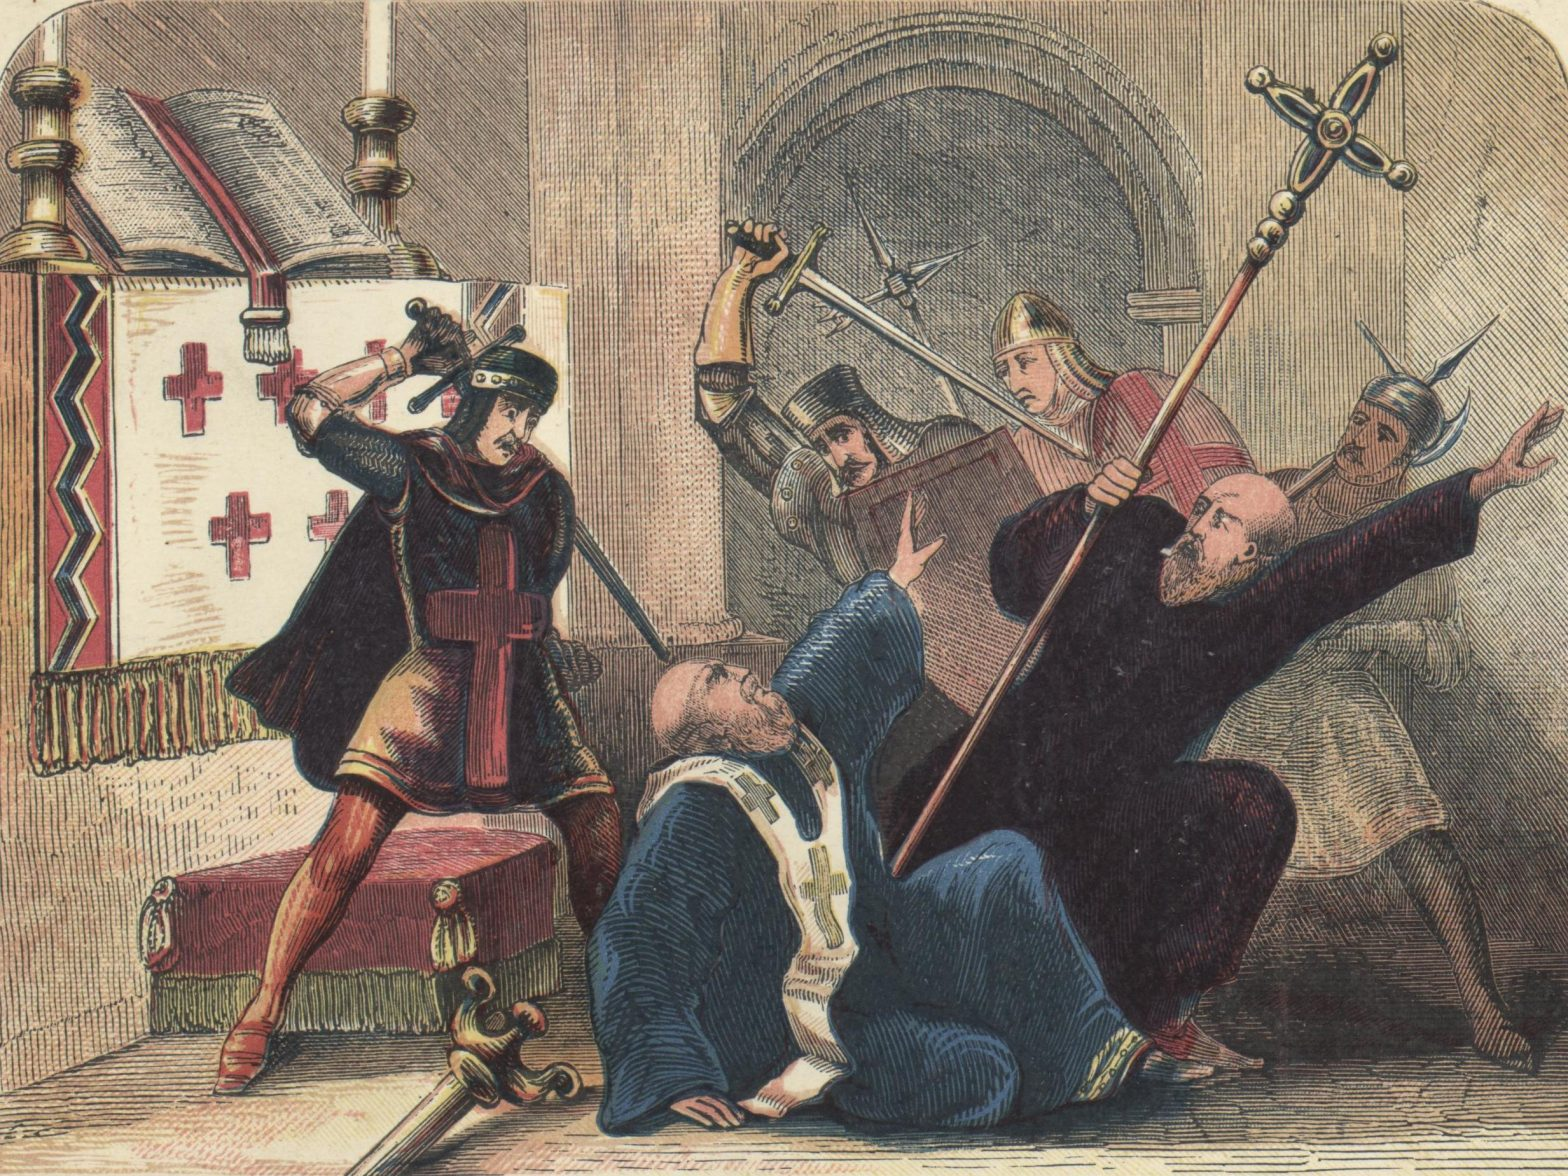 'A brutal murder that shocked Europe': Death of Thomas Becket to be marked with year of events